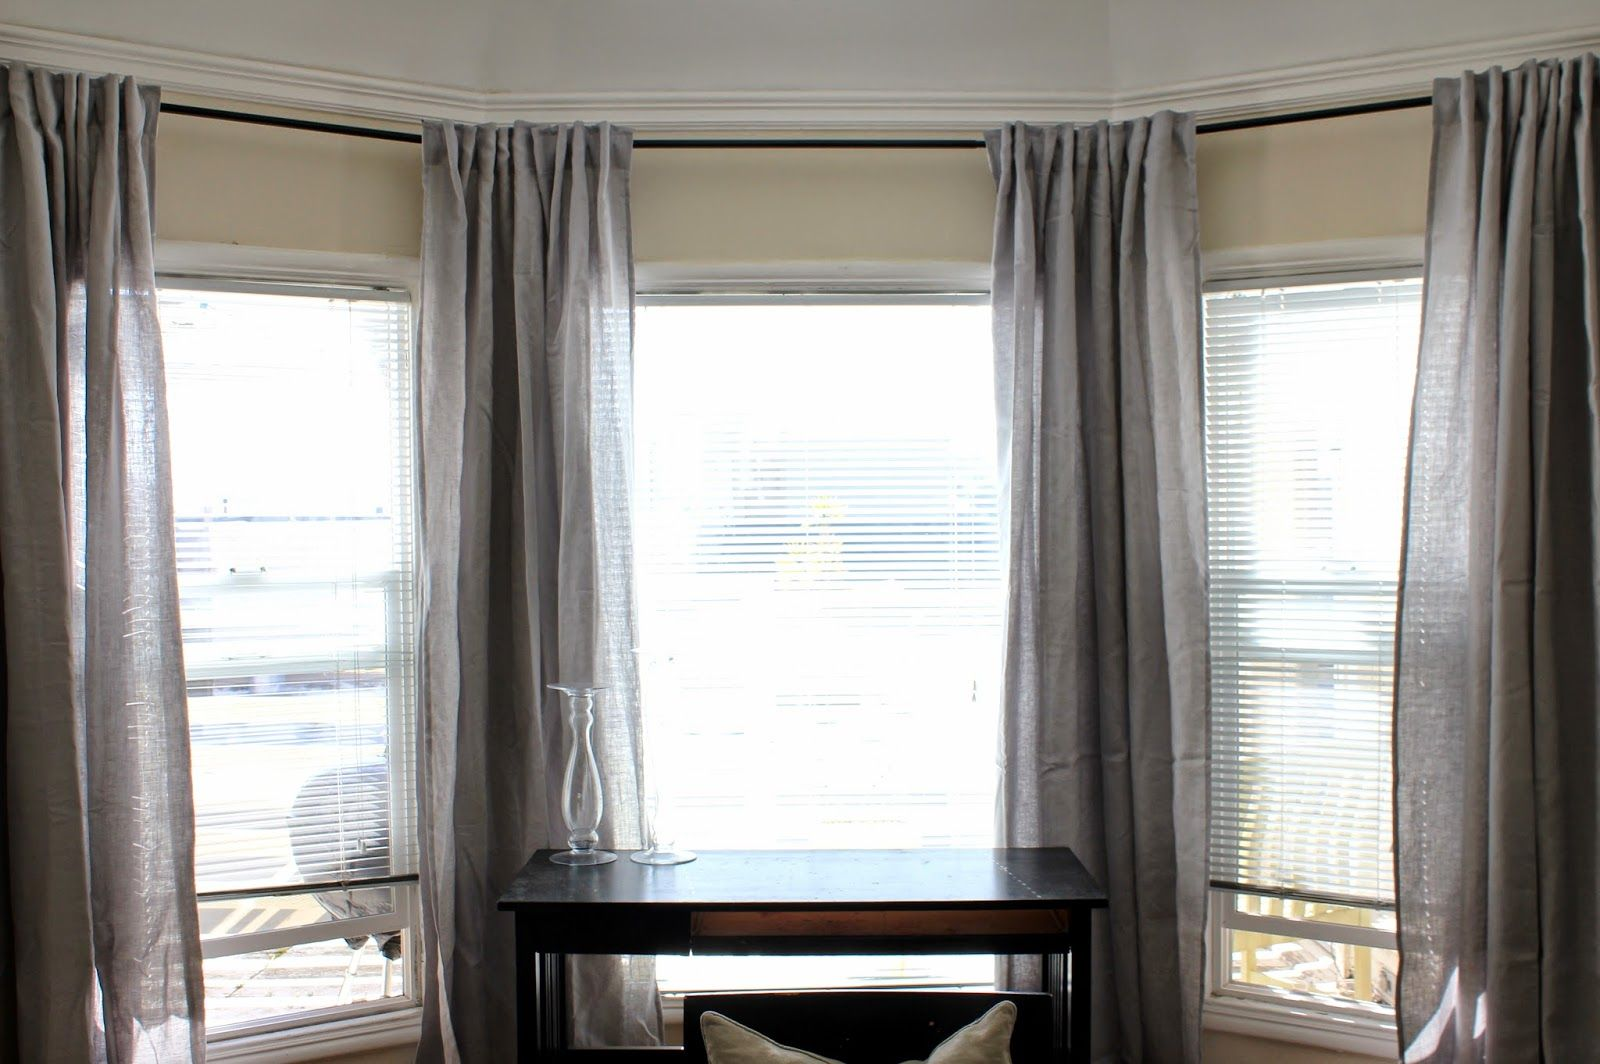 Cup Half Full April 2014 Linen Pinterest Linen Curtain Grey Curtains And Linens